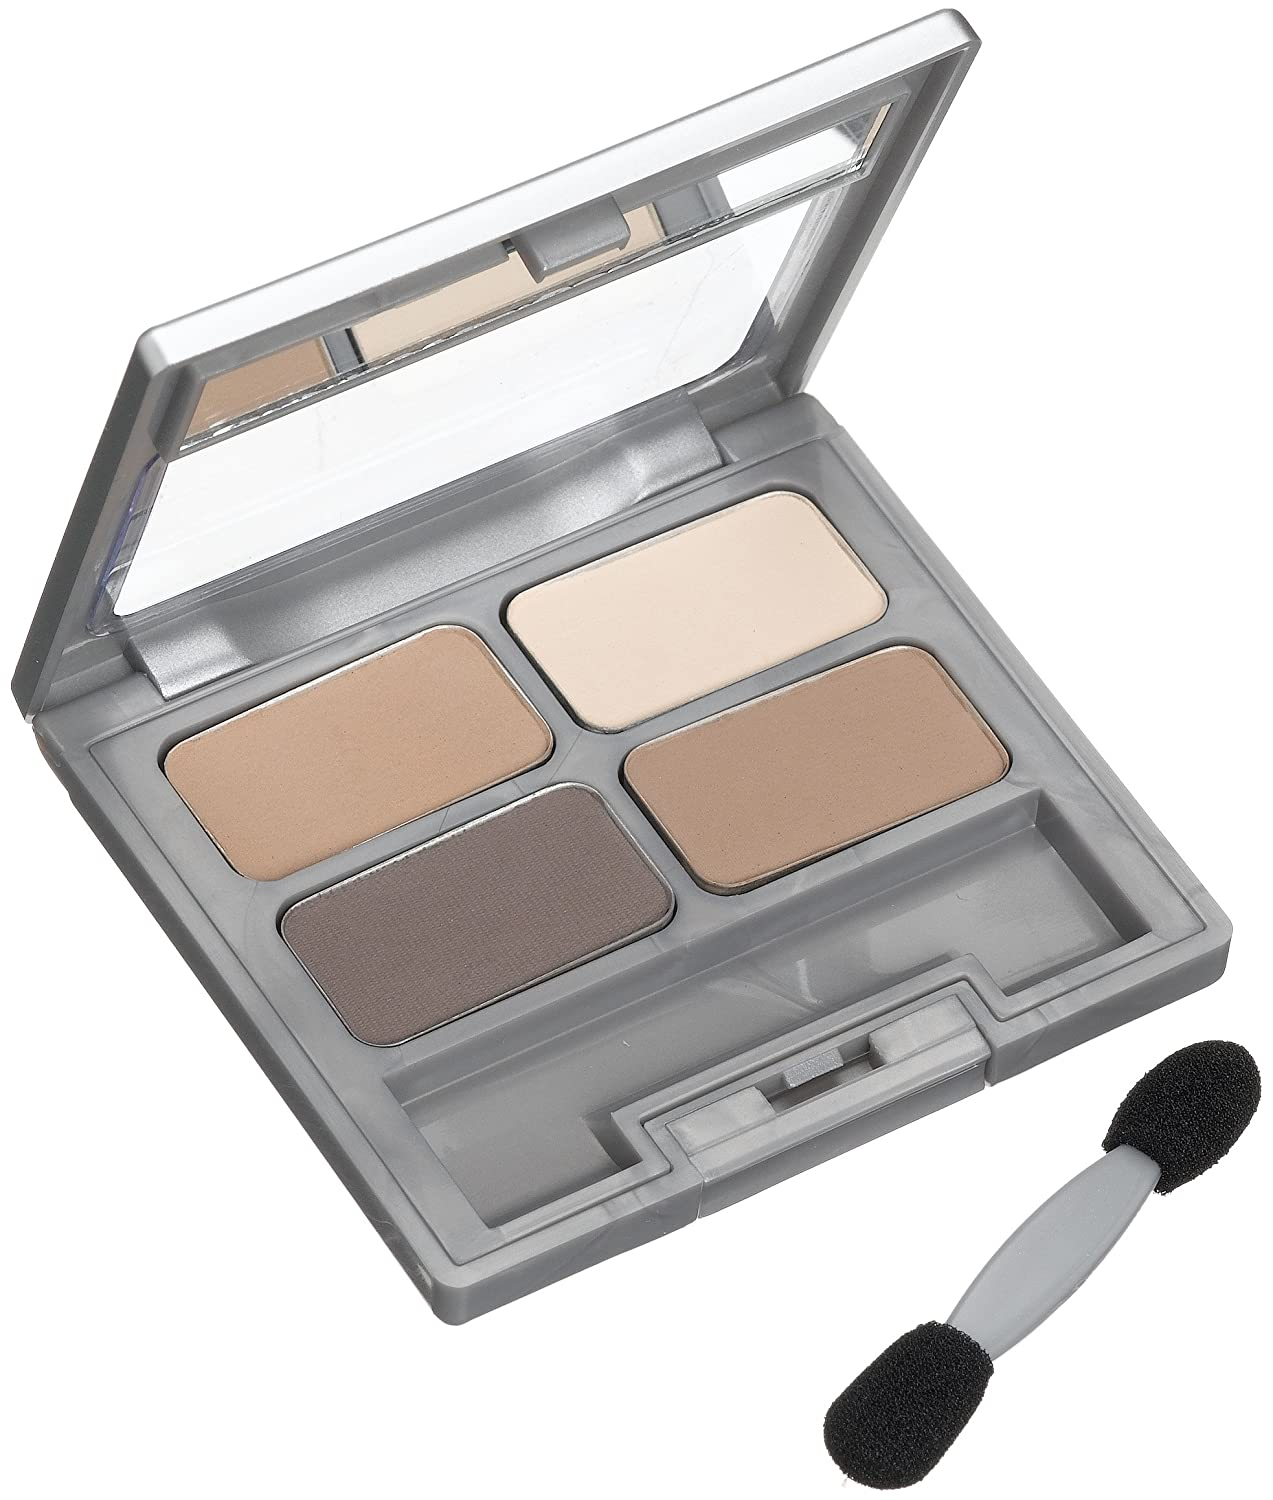 Physicians Formula Matte Collection Quad Eyeshadow, Canyon Classics, 0.22 Ounce Physicians Formula Inc 90567